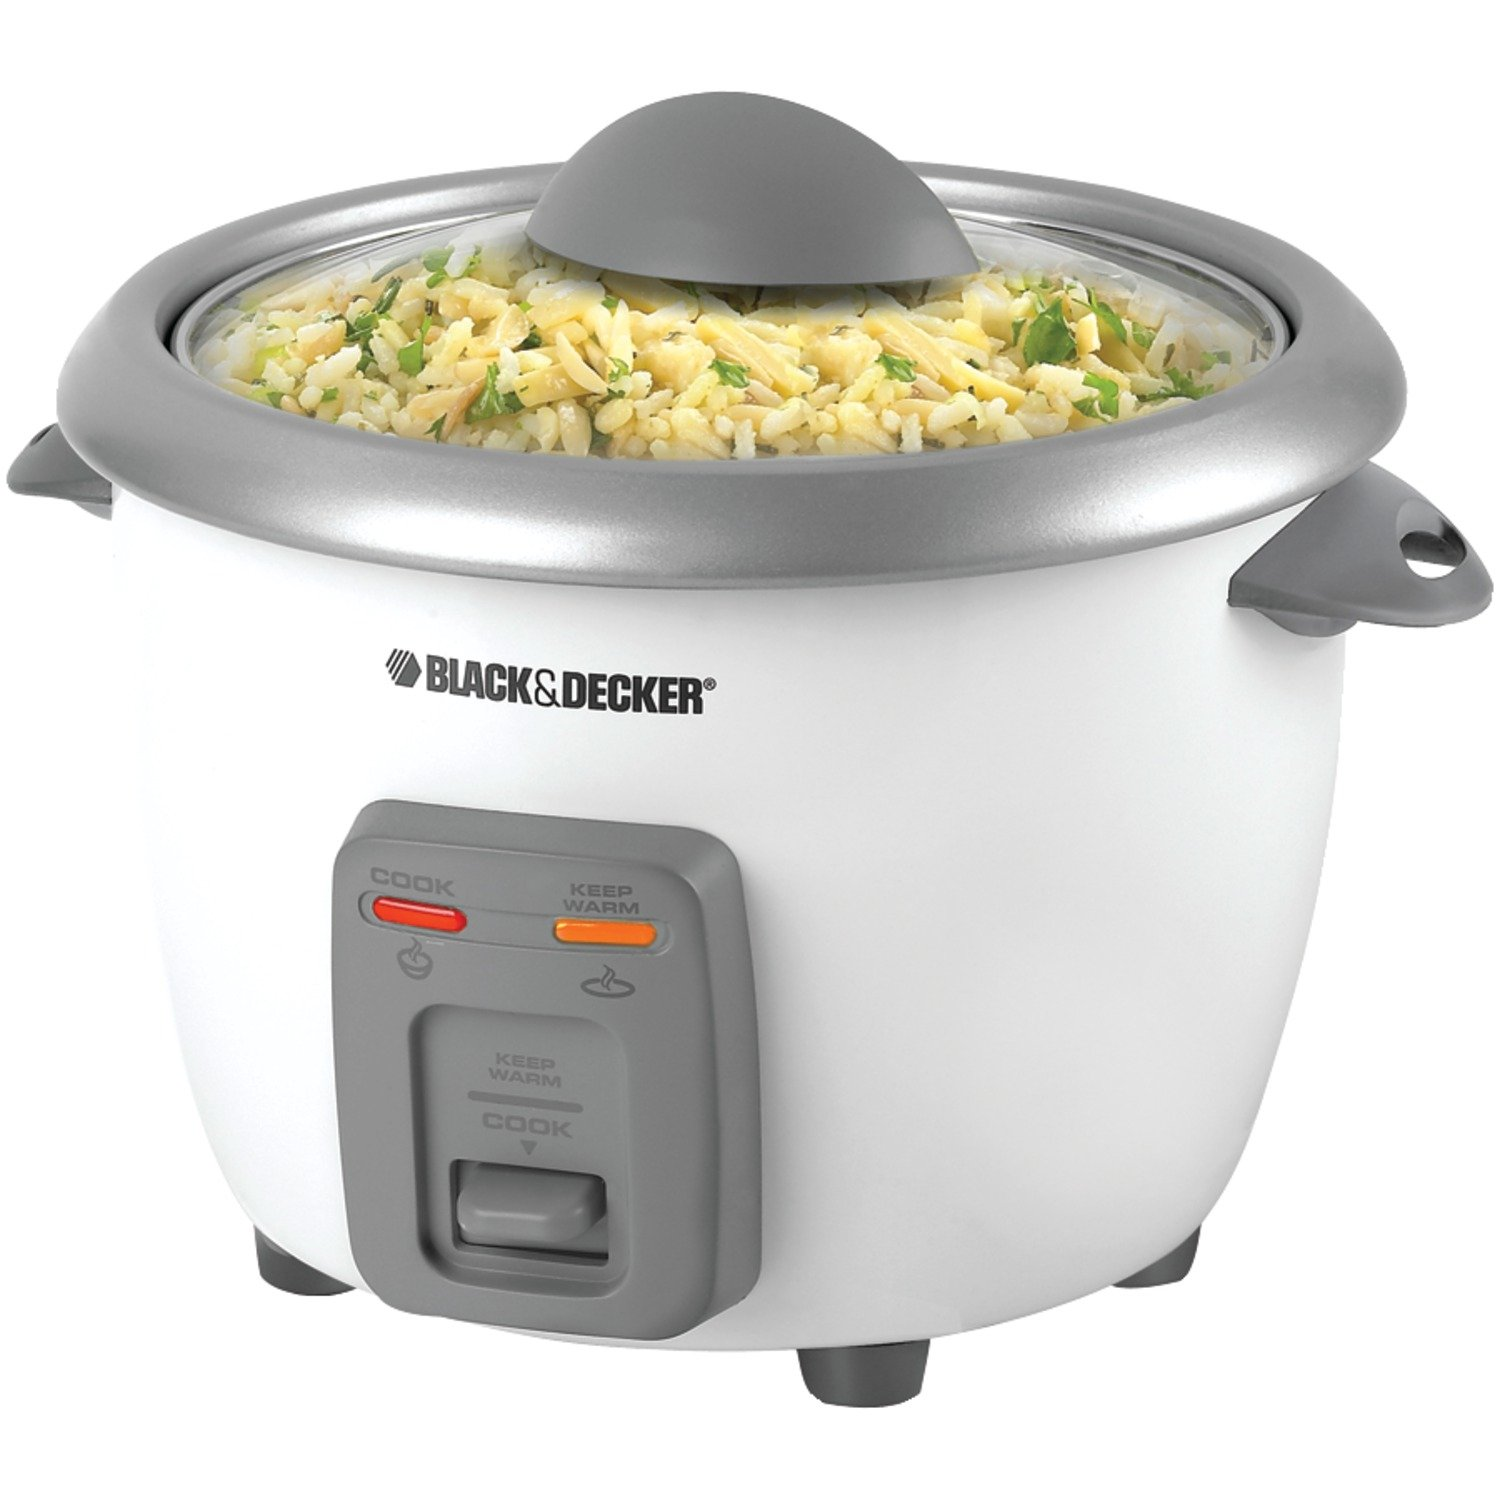 Black & Decker RC3406 3-Cup Dry/6-Cup Rice Cooker and Steamer, White